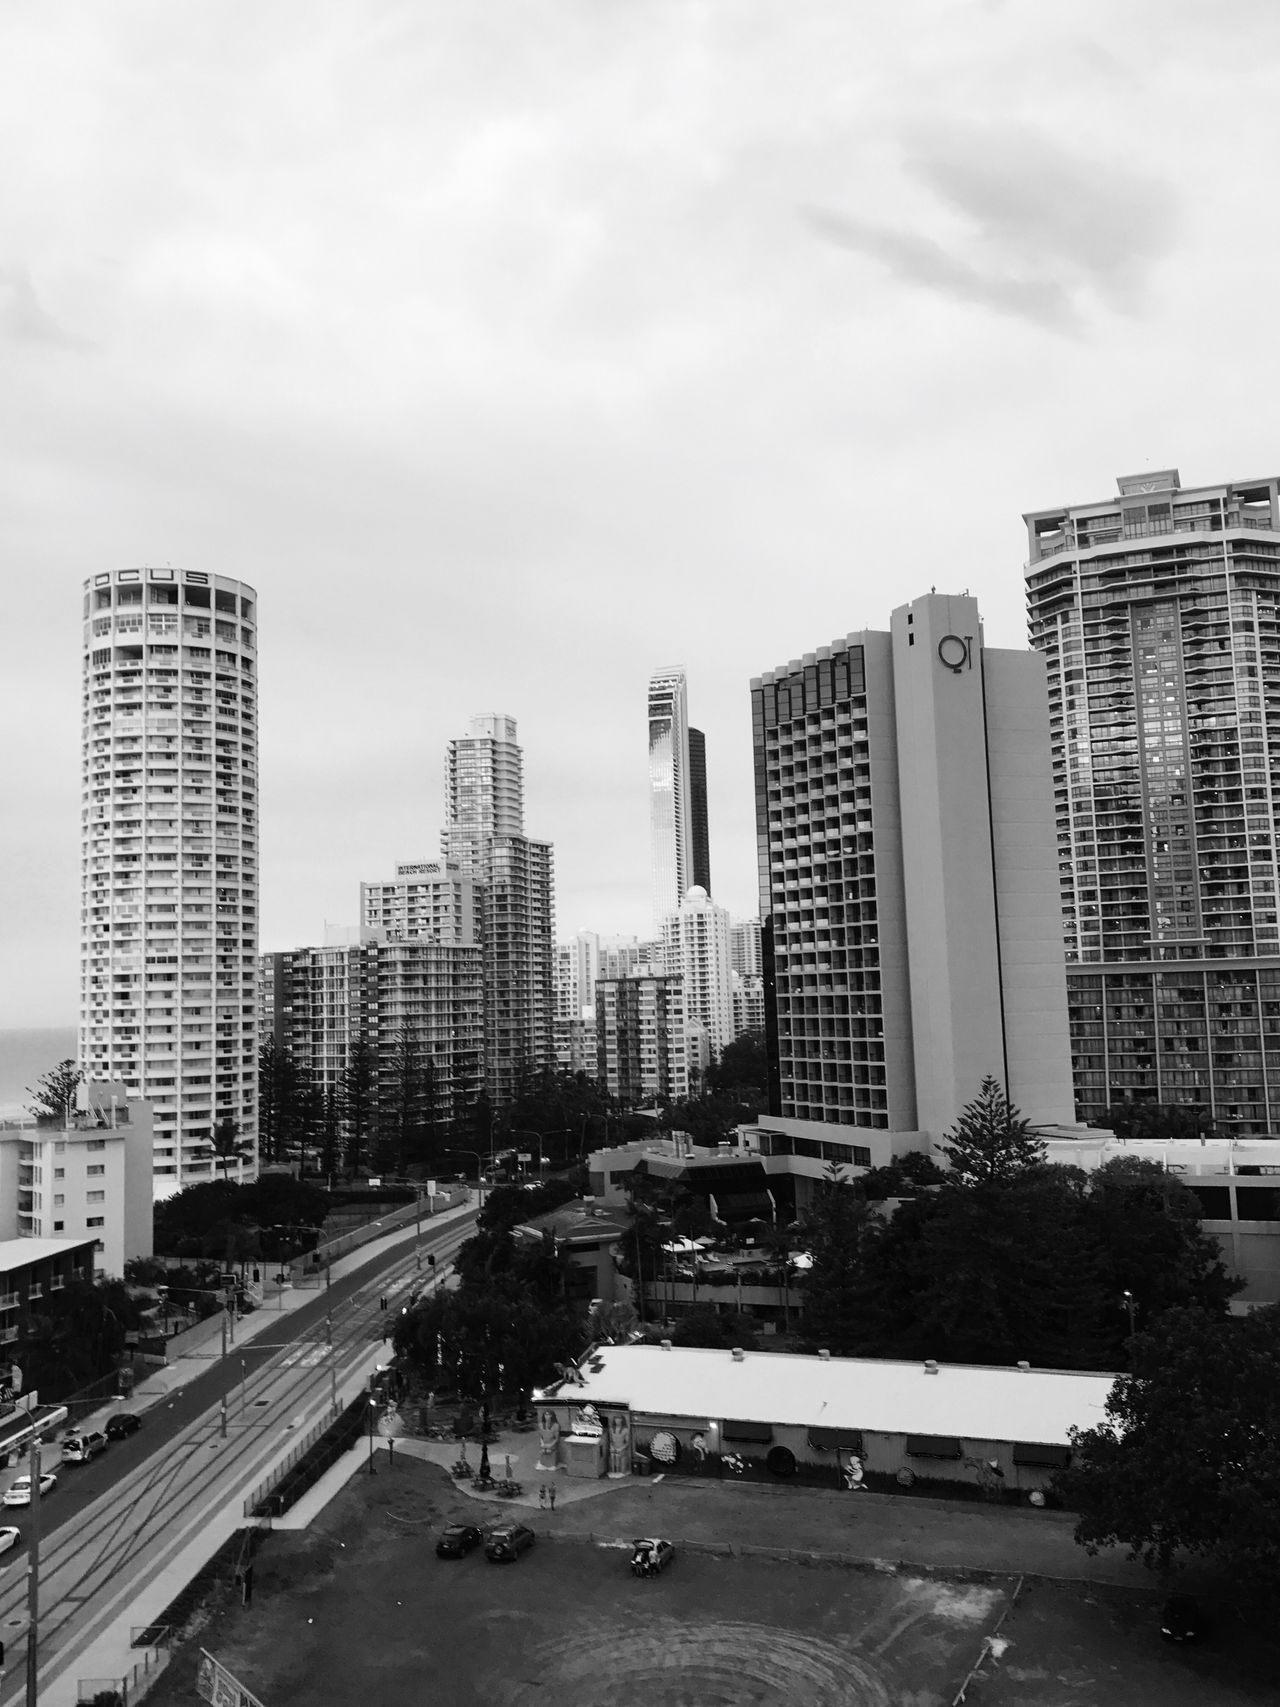 Gold Coast, Queensland, Australia . City Building Exterior Architecture Built Structure Street Transportation Skyscraper Car Road Land Vehicle Sky Outdoors City Life No People Modern Day Cityscape EyeEmNewHere EyeEmNewHere